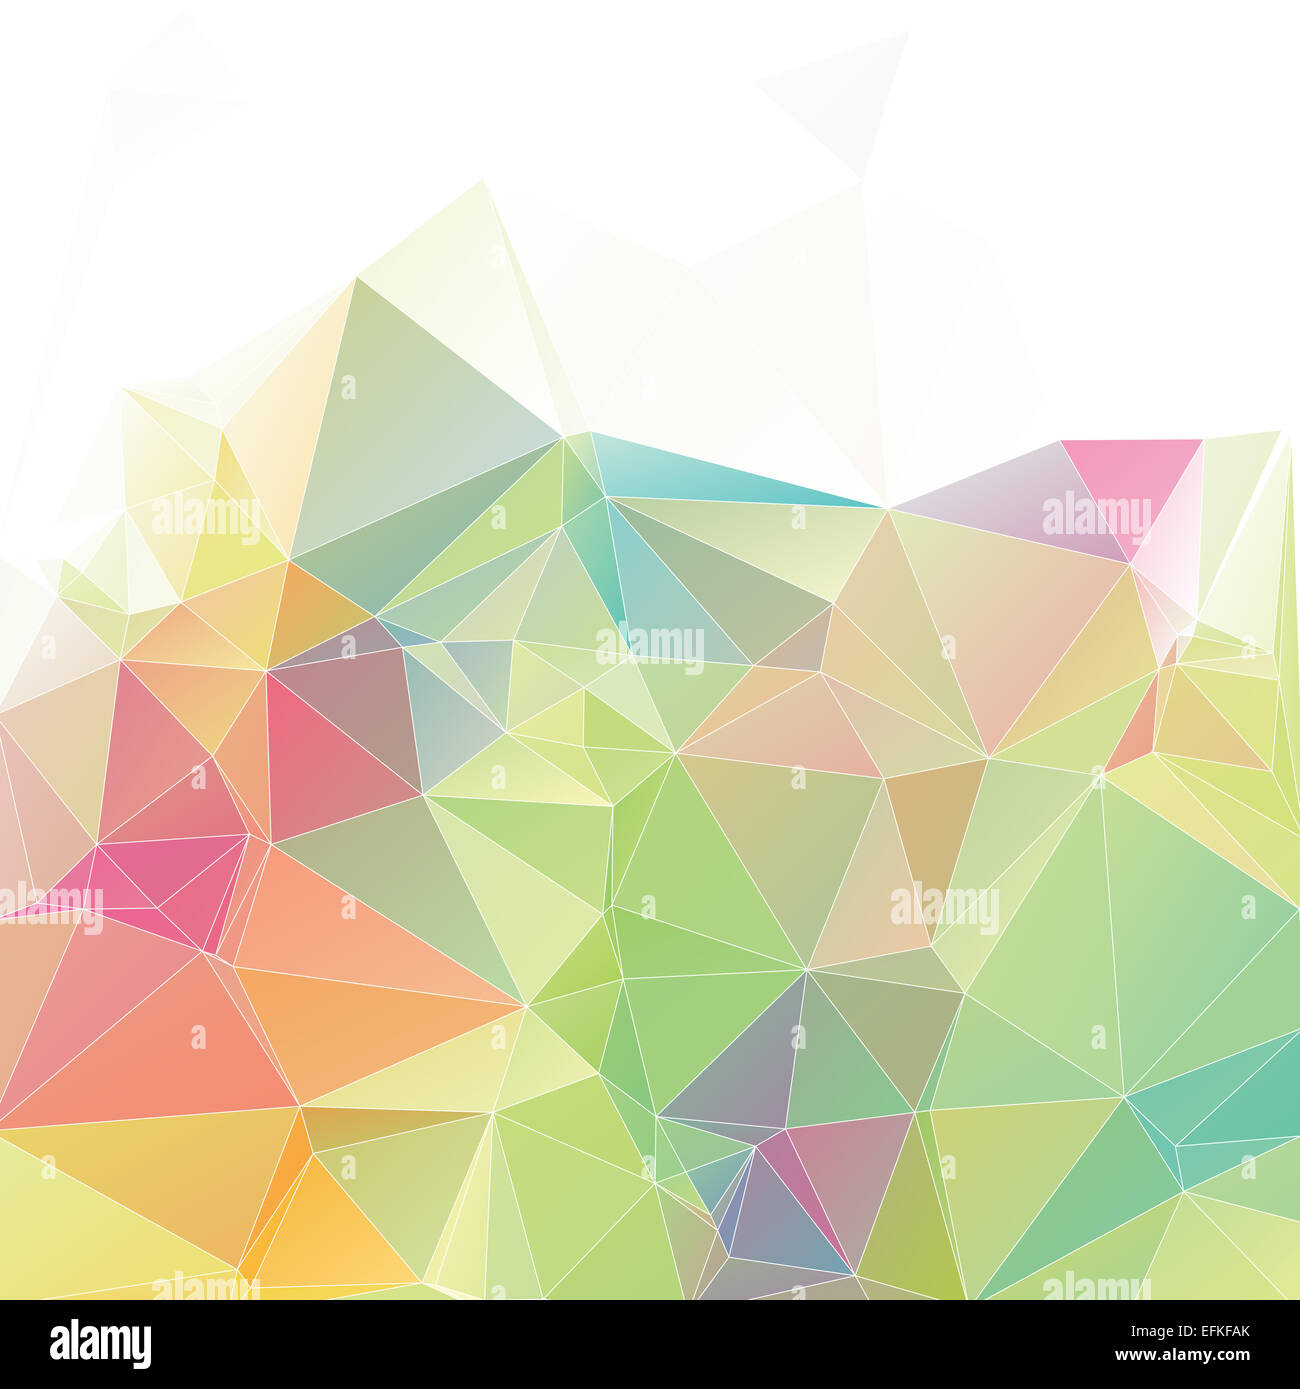 Pastel polygon geometric with triangle parametric shape